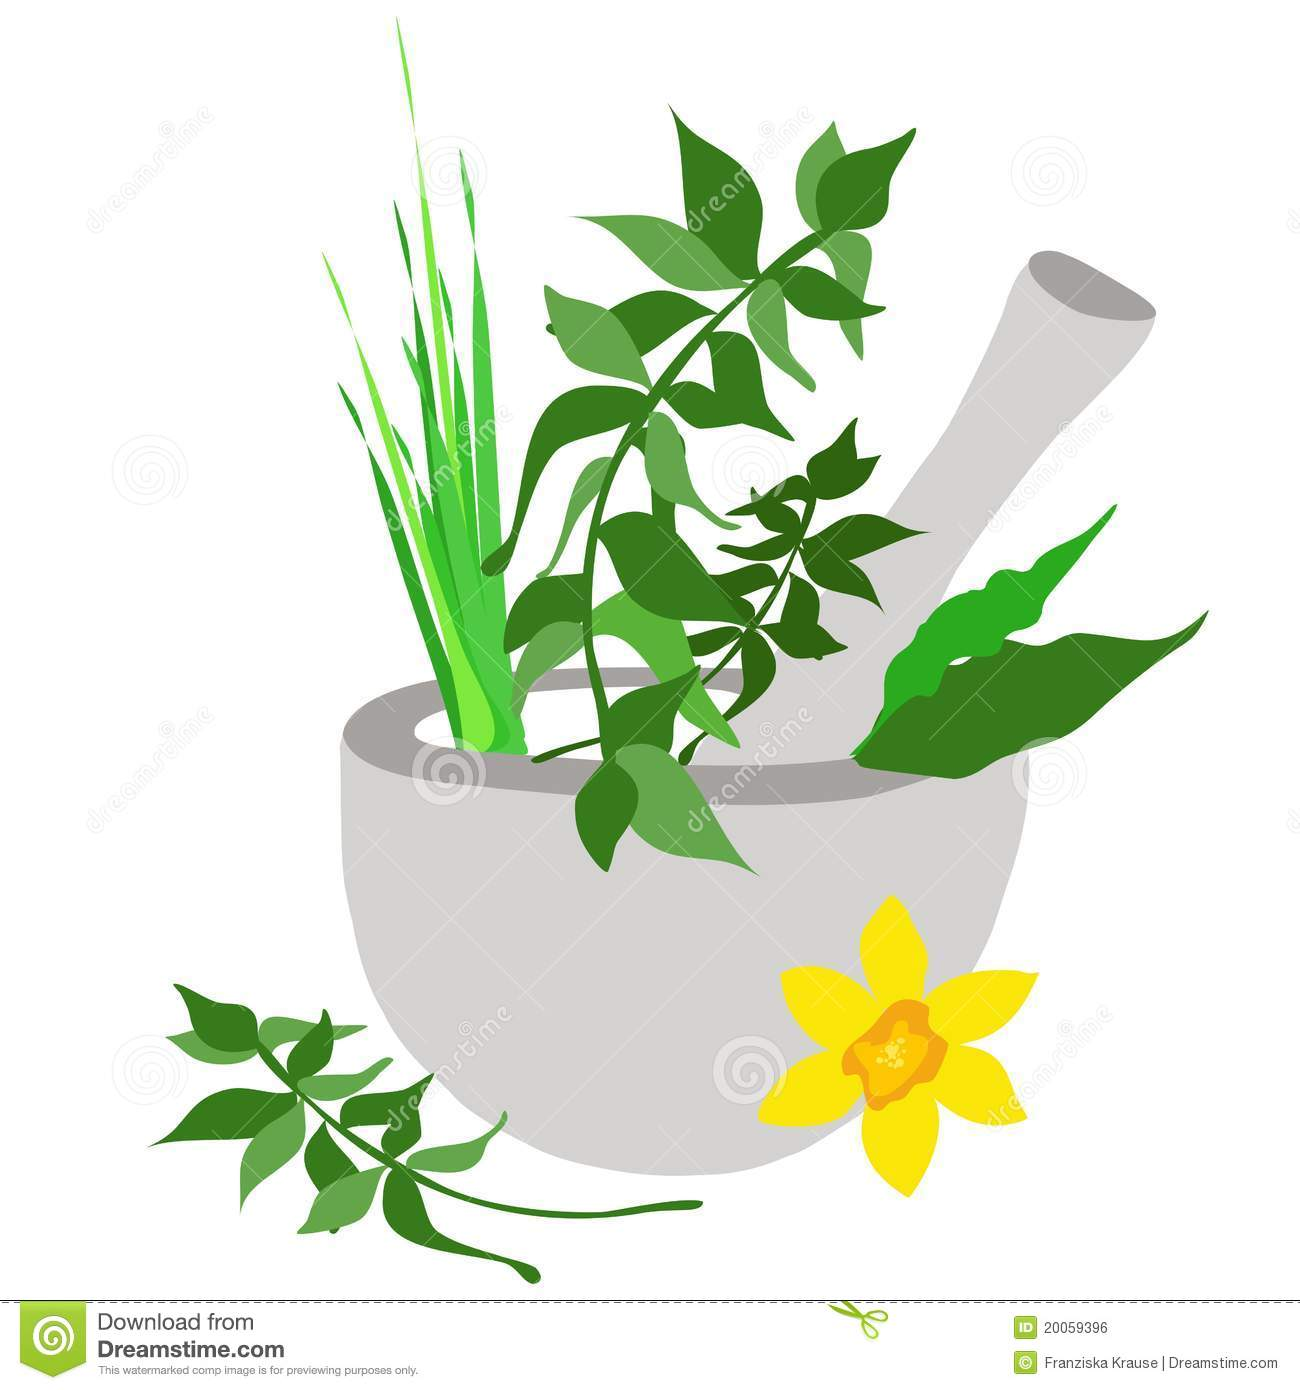 Spices Mortar and Pestle-Clip Art – Clipart Download